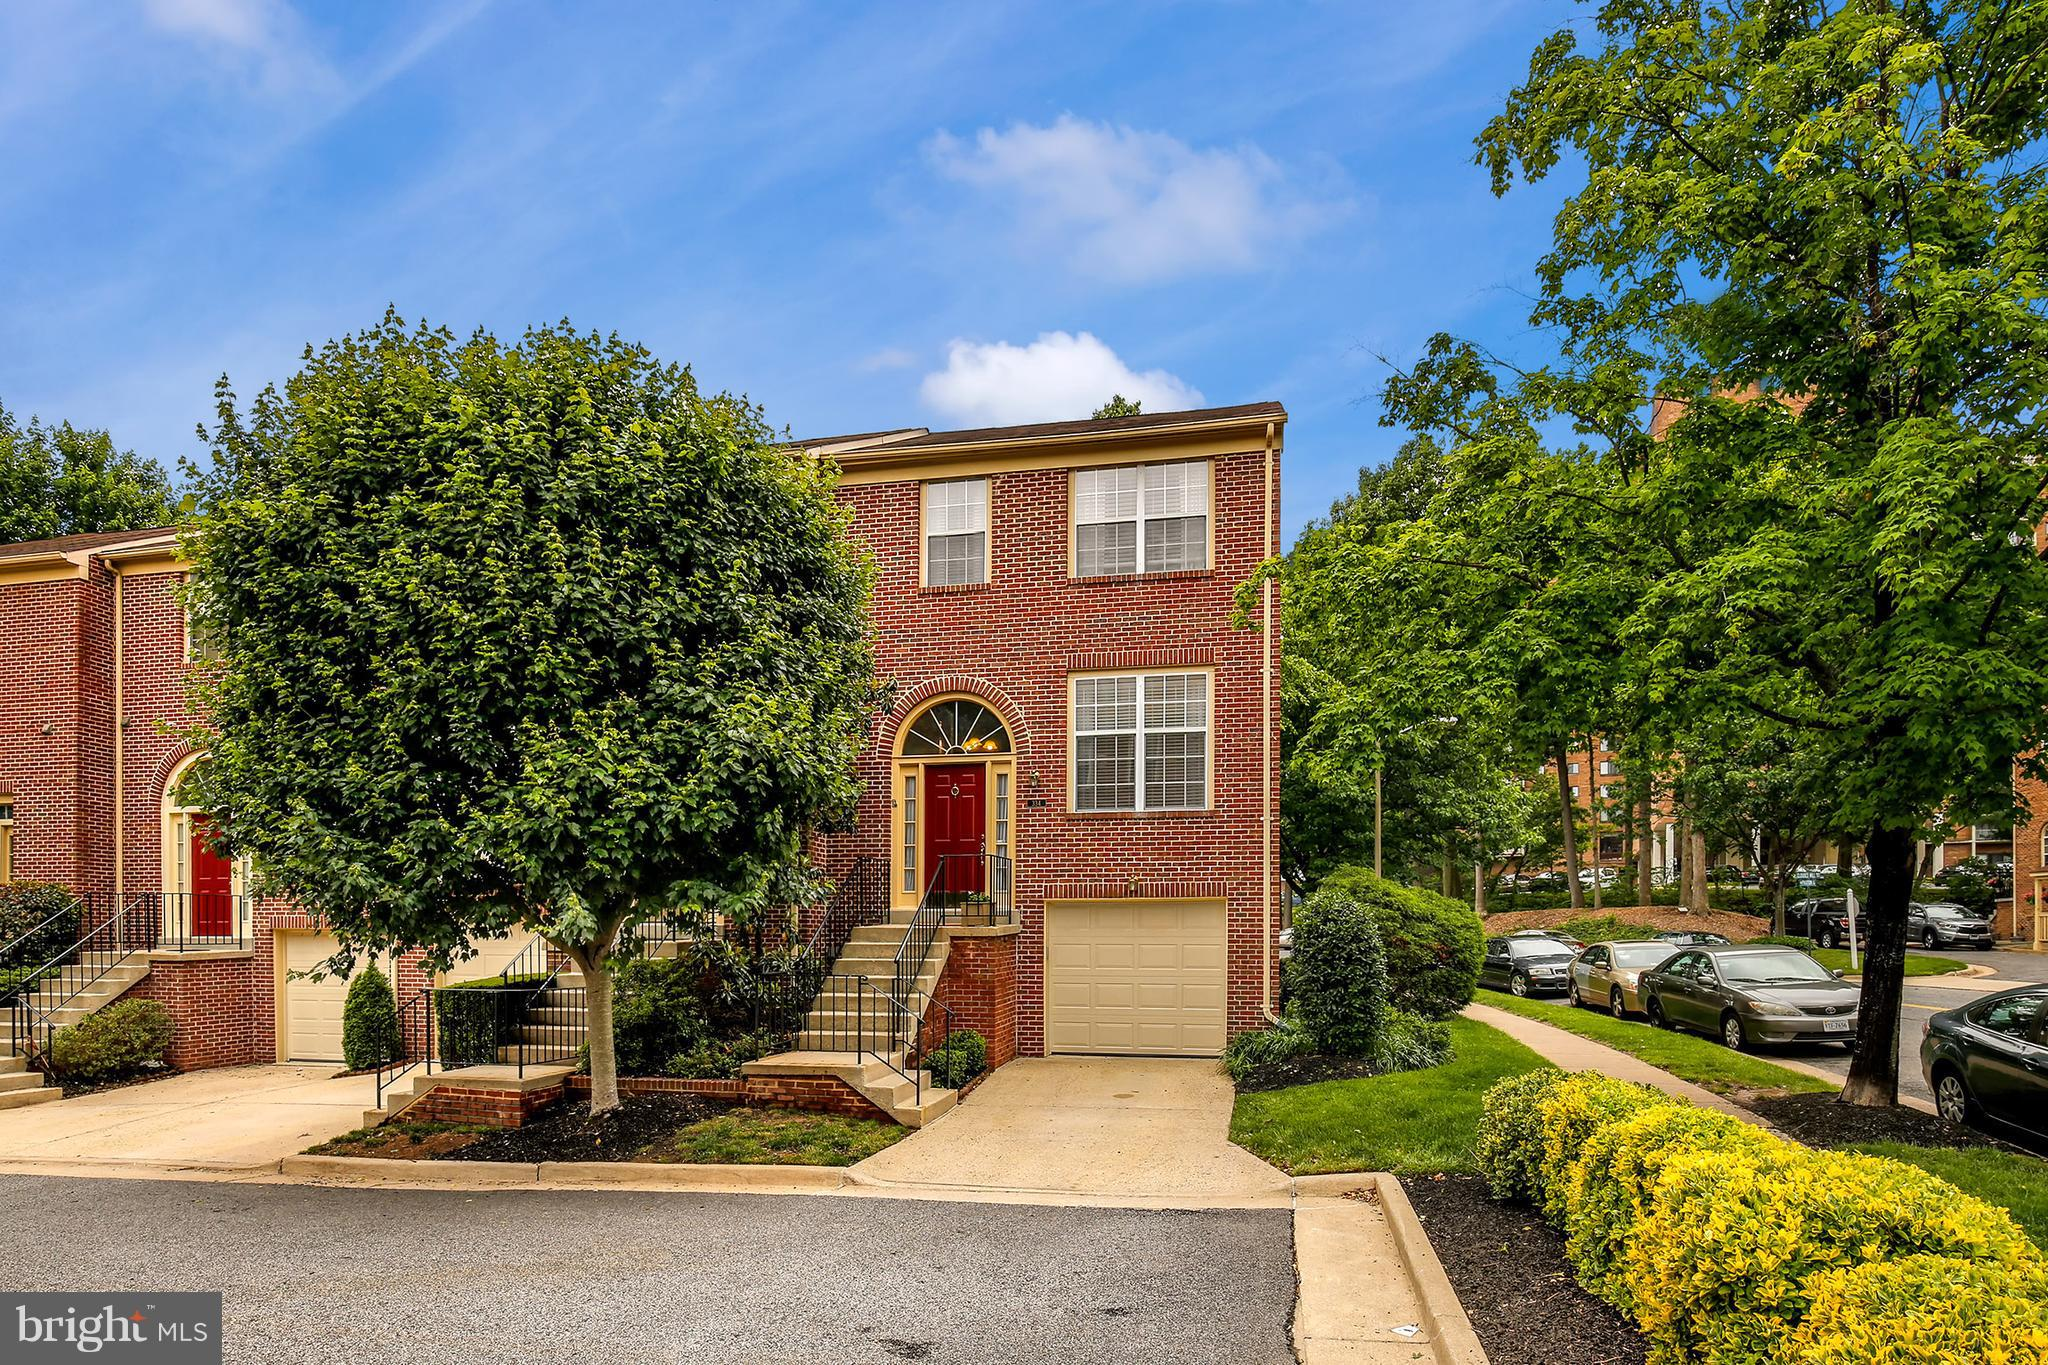 Welcome to Mill Stream. Large, move-in ready, brick-front garage TH. 3 finished levels with the convenience of condo living! Updated kitchen & baths, fresh paint & newer carpet. 1.985 sf, including rec. room, 2 FBA + 2 HBA. New roofing, HVAC, large patio and composite deck. Heart of Alexandria location w/easy access to restaurants, transportation and shopping.